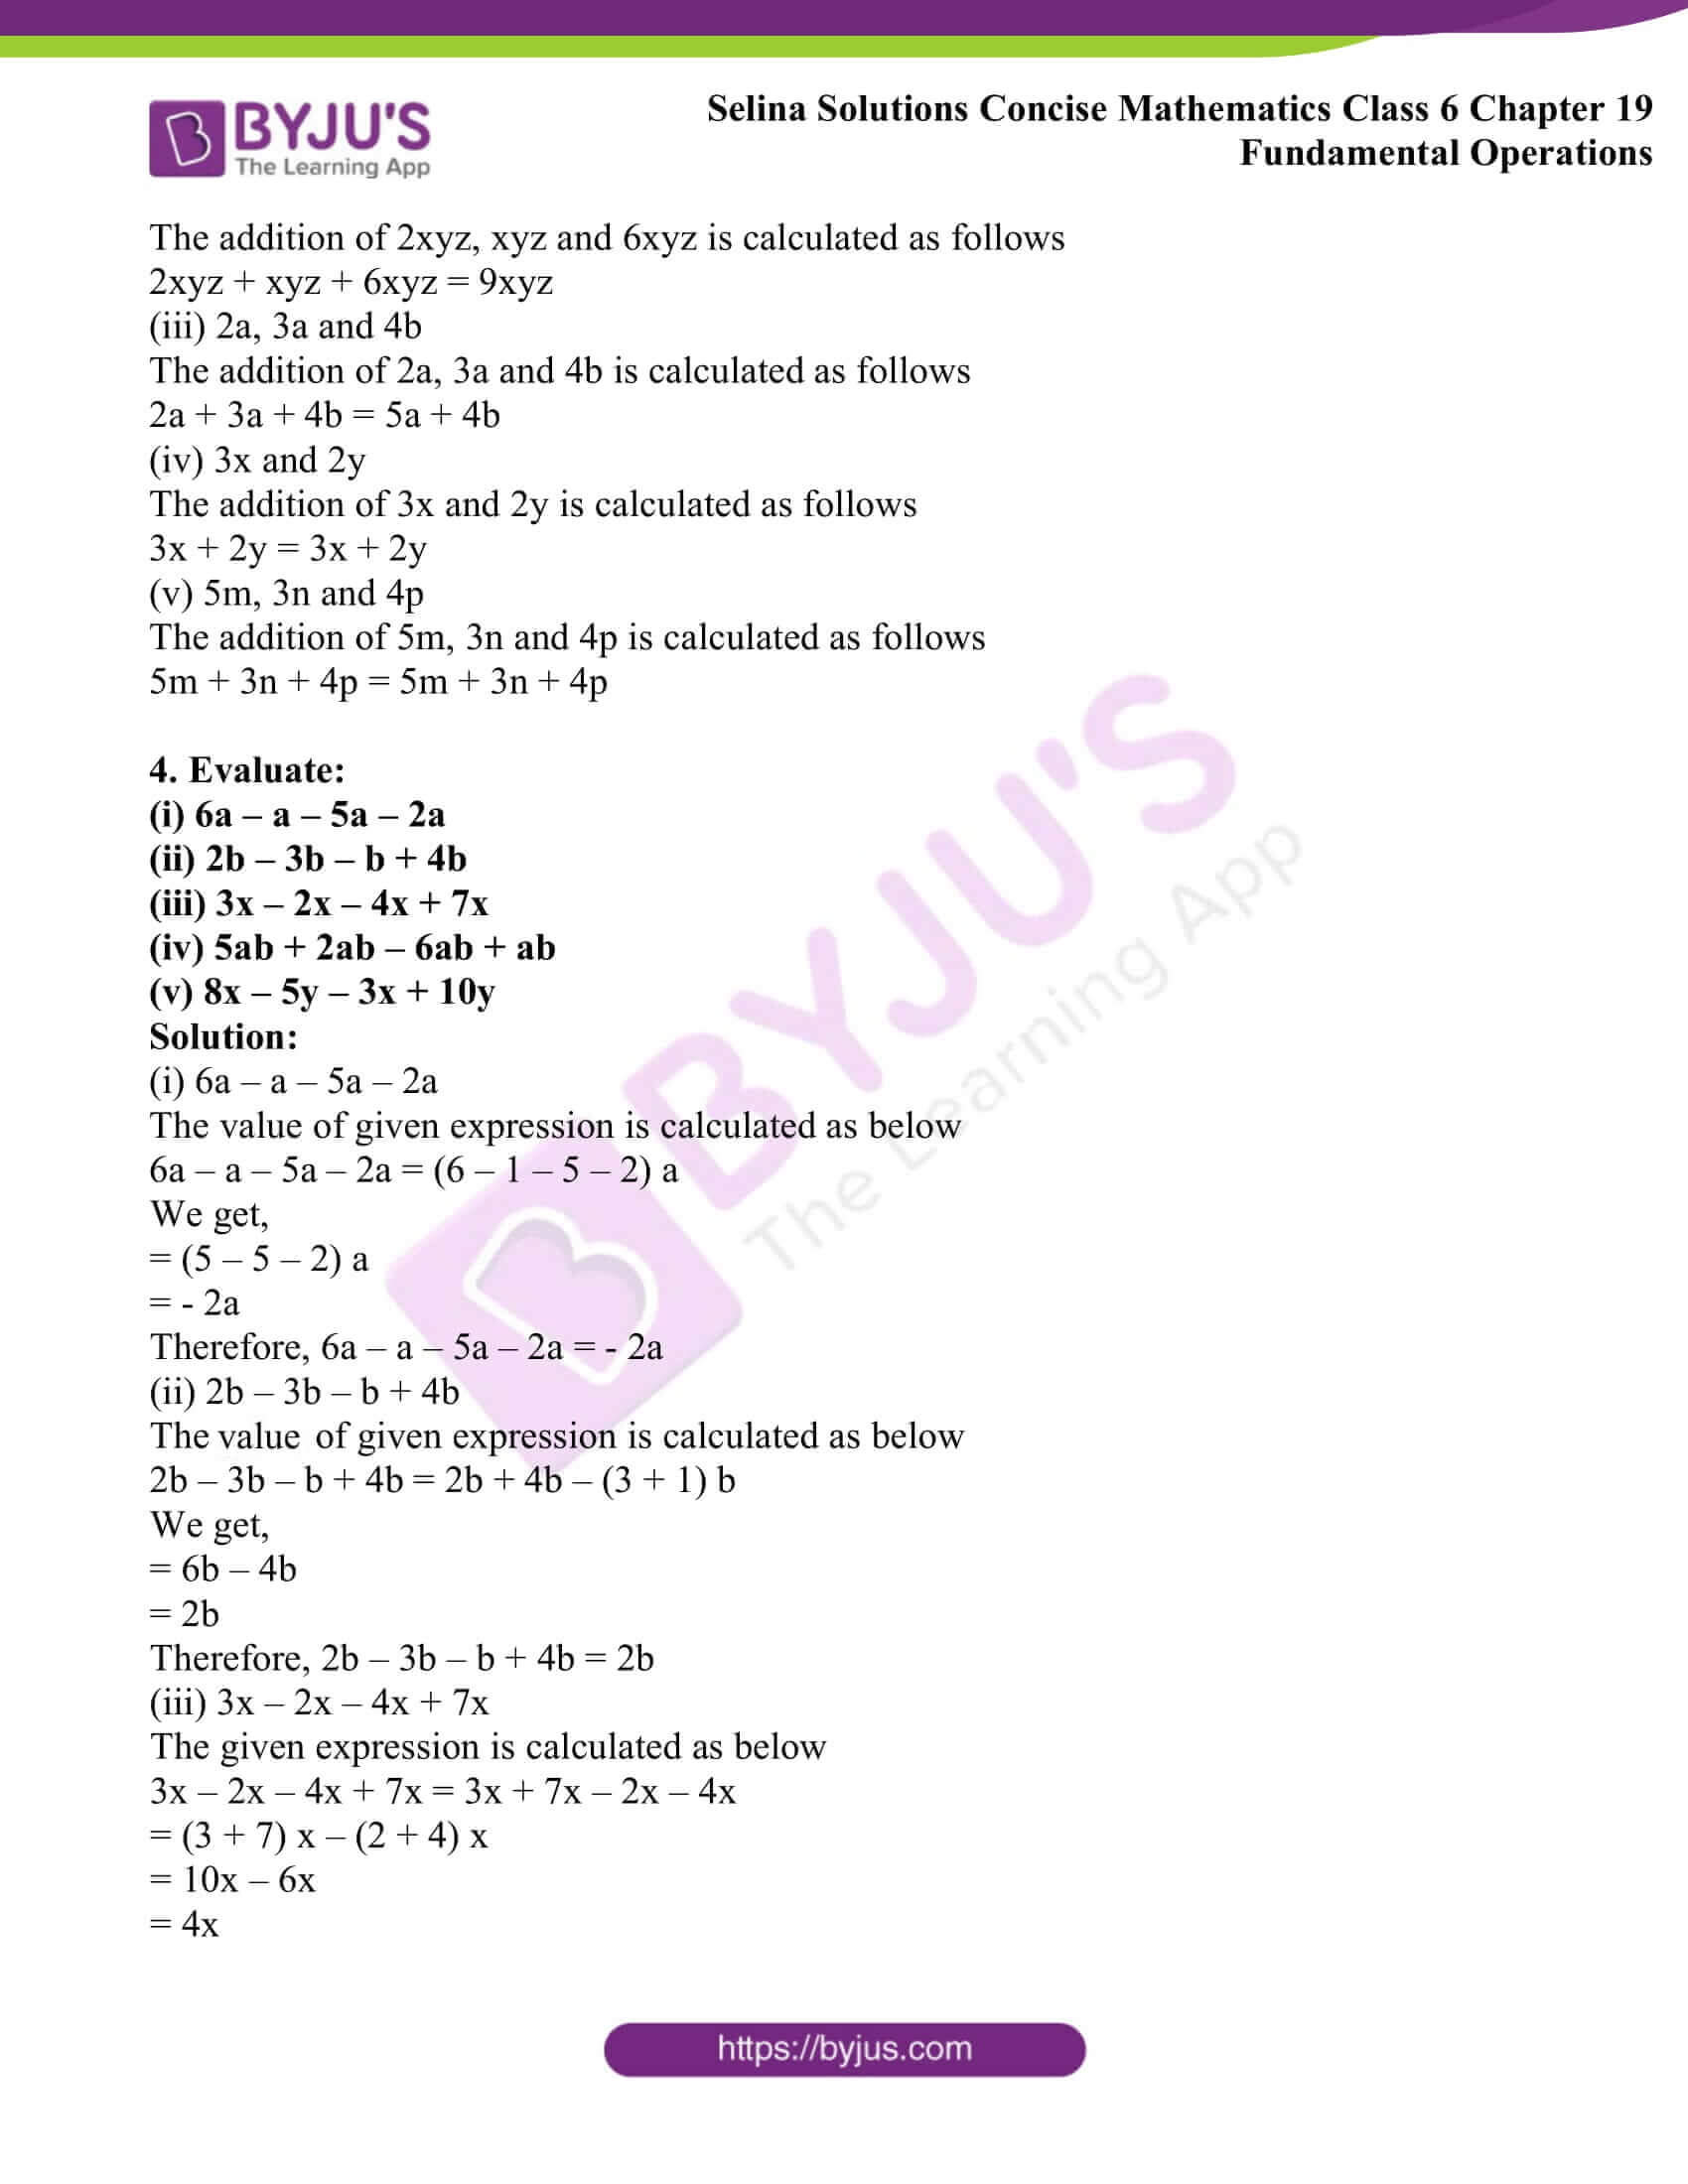 selina solutions concise math class 6 chapter 19 ex a 2